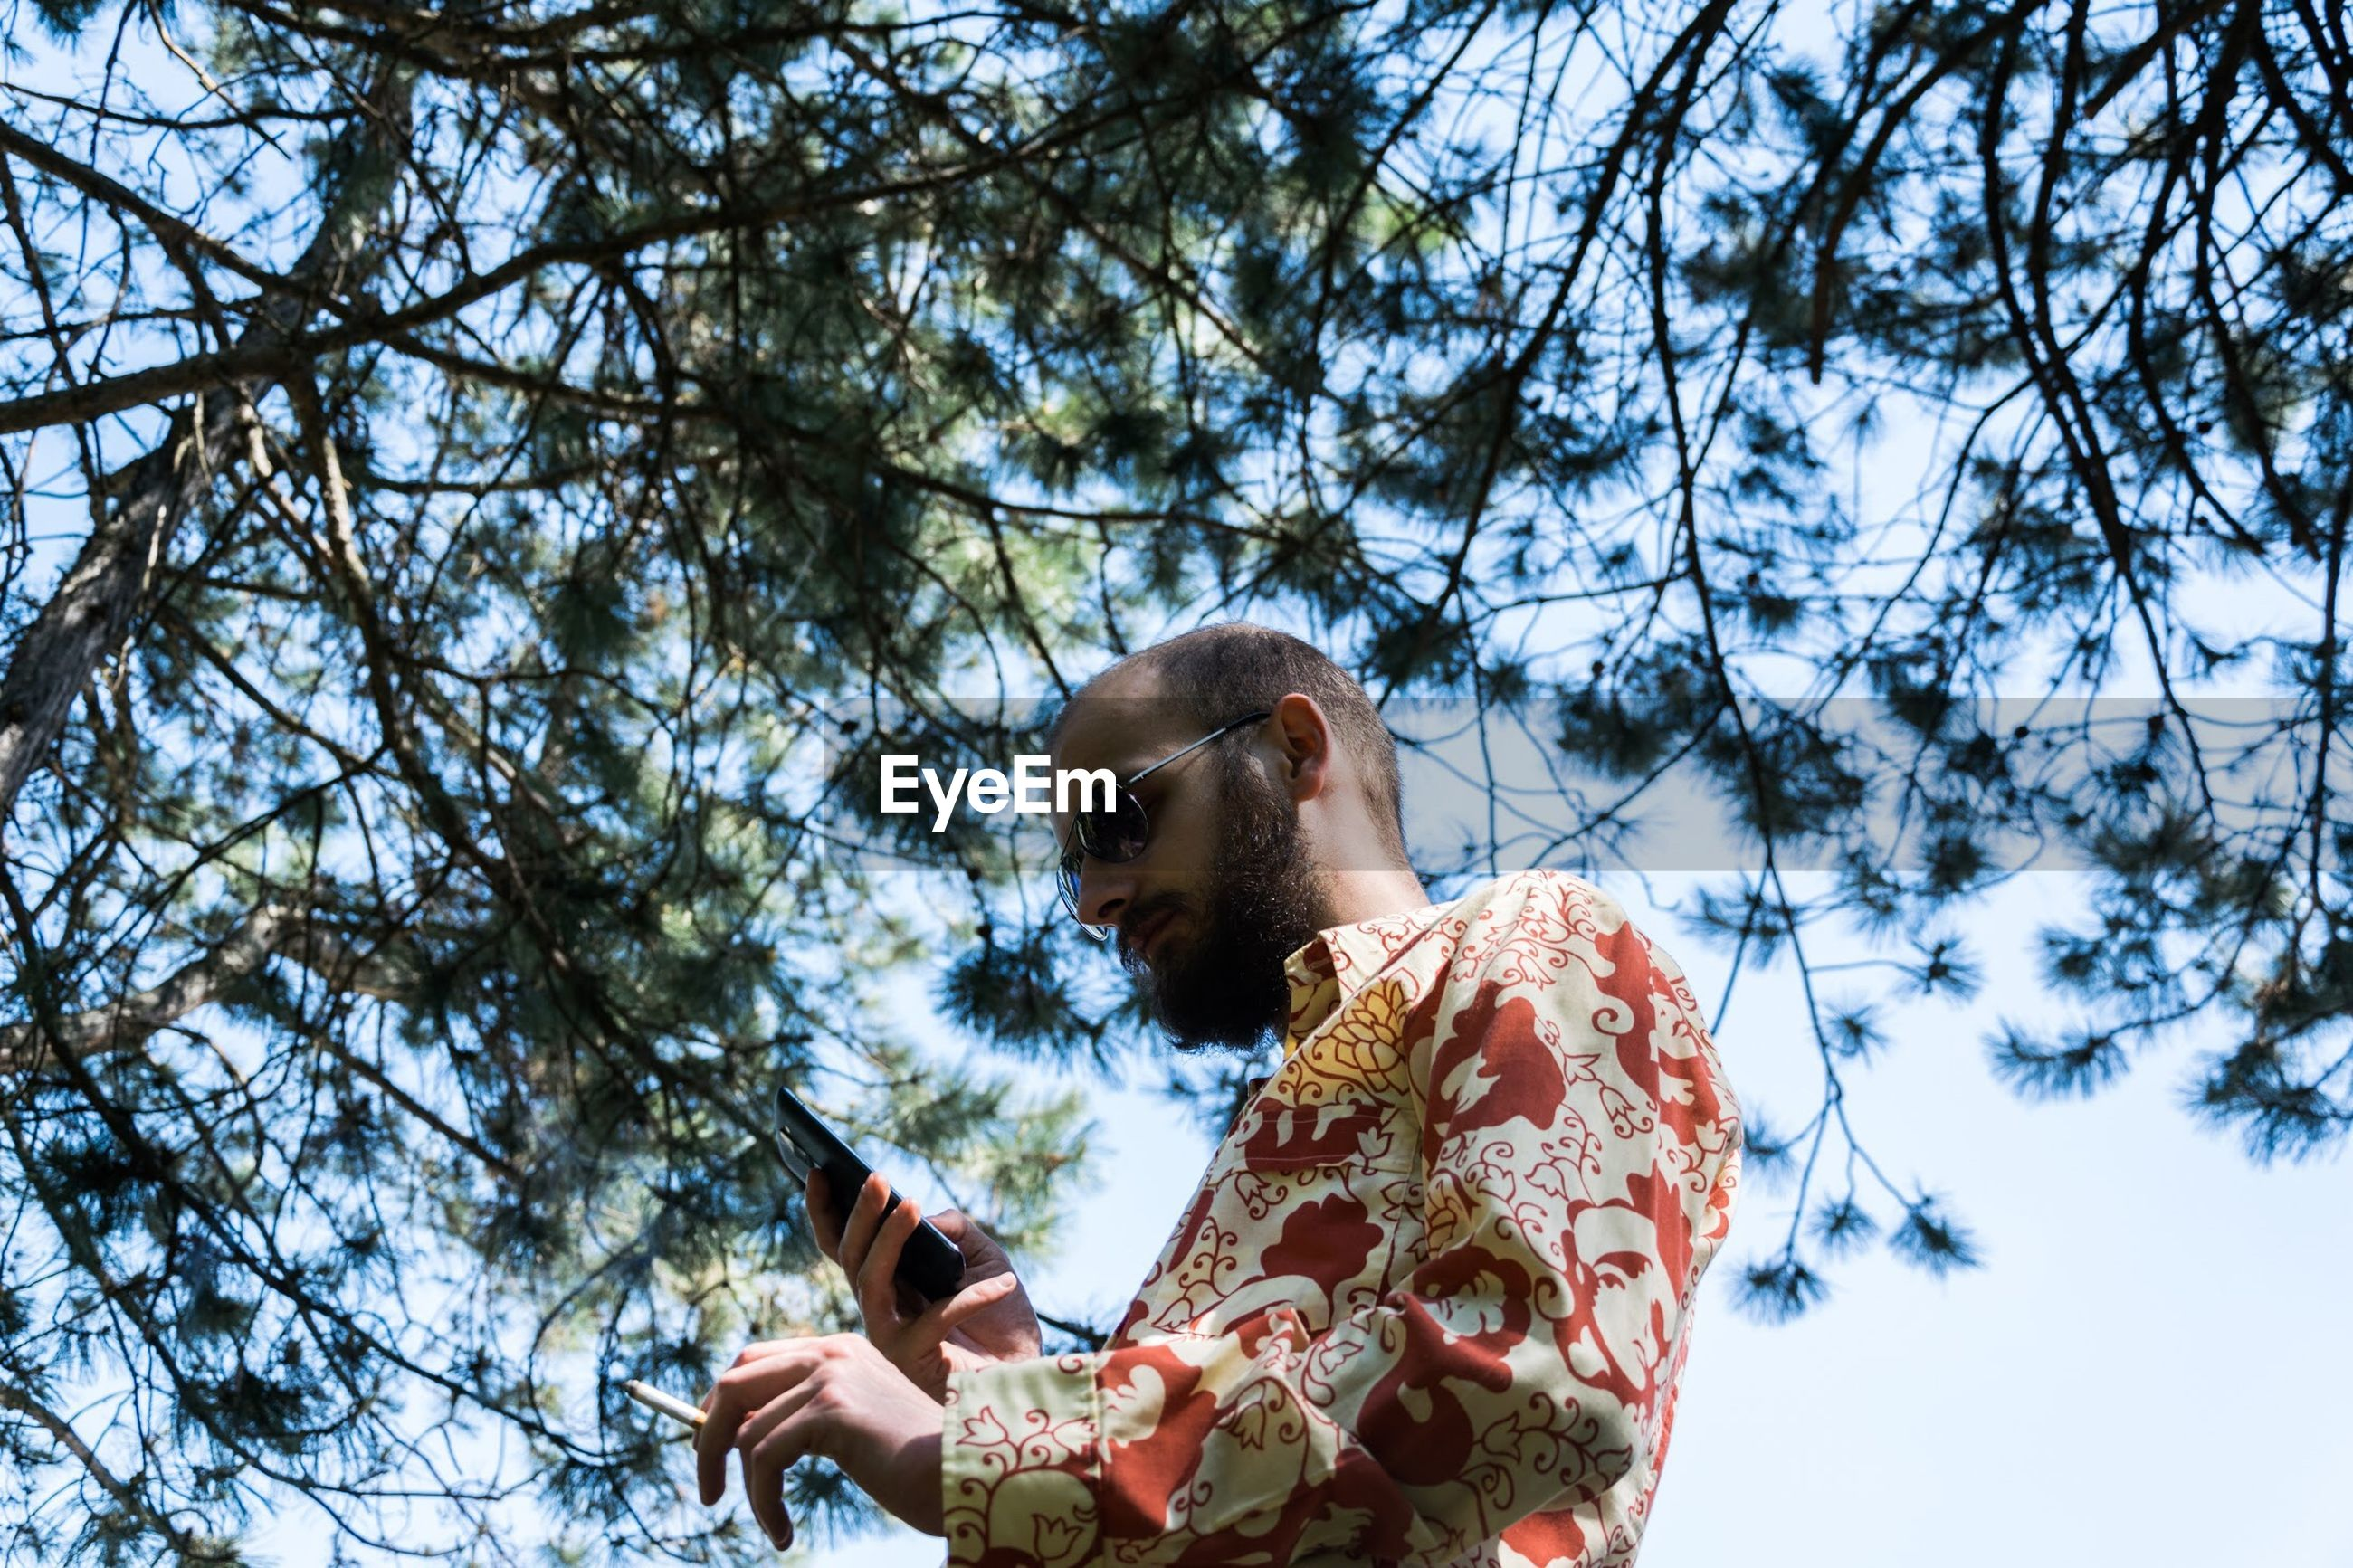 Low angle view of man using phone against branches